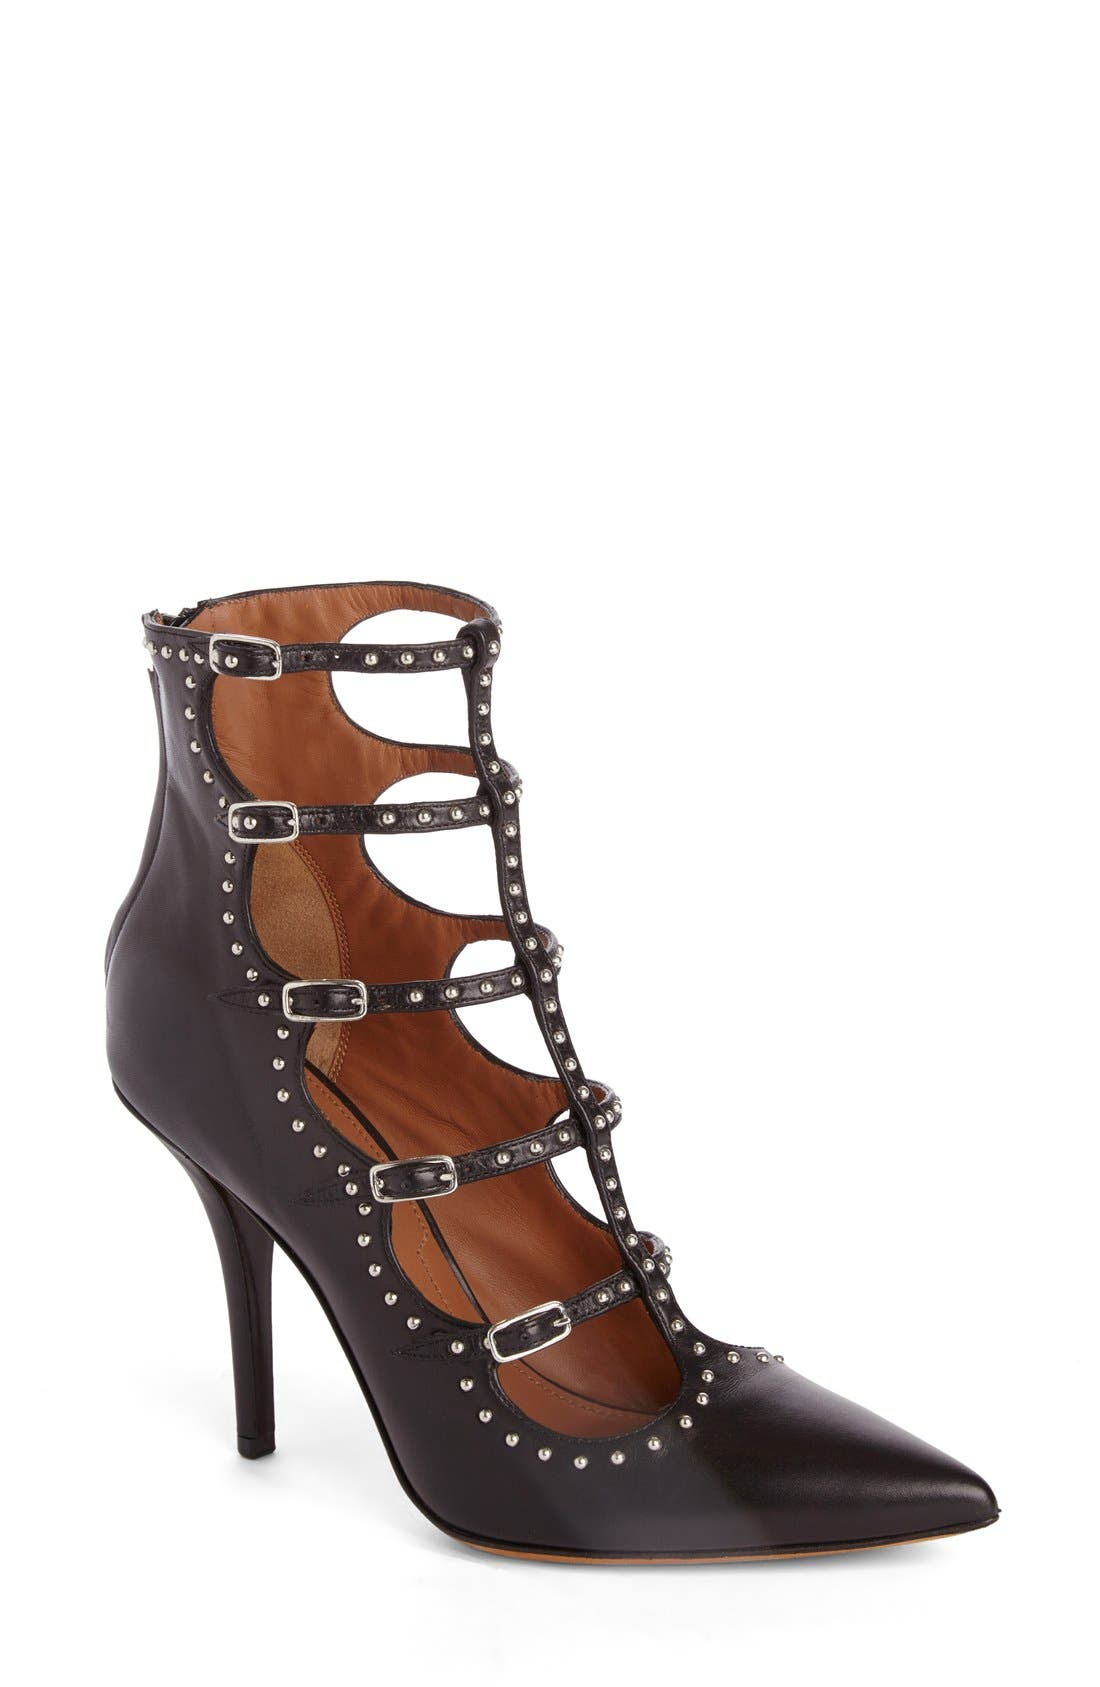 Main Image - Givenchy Elegant Cage Pump (Women)